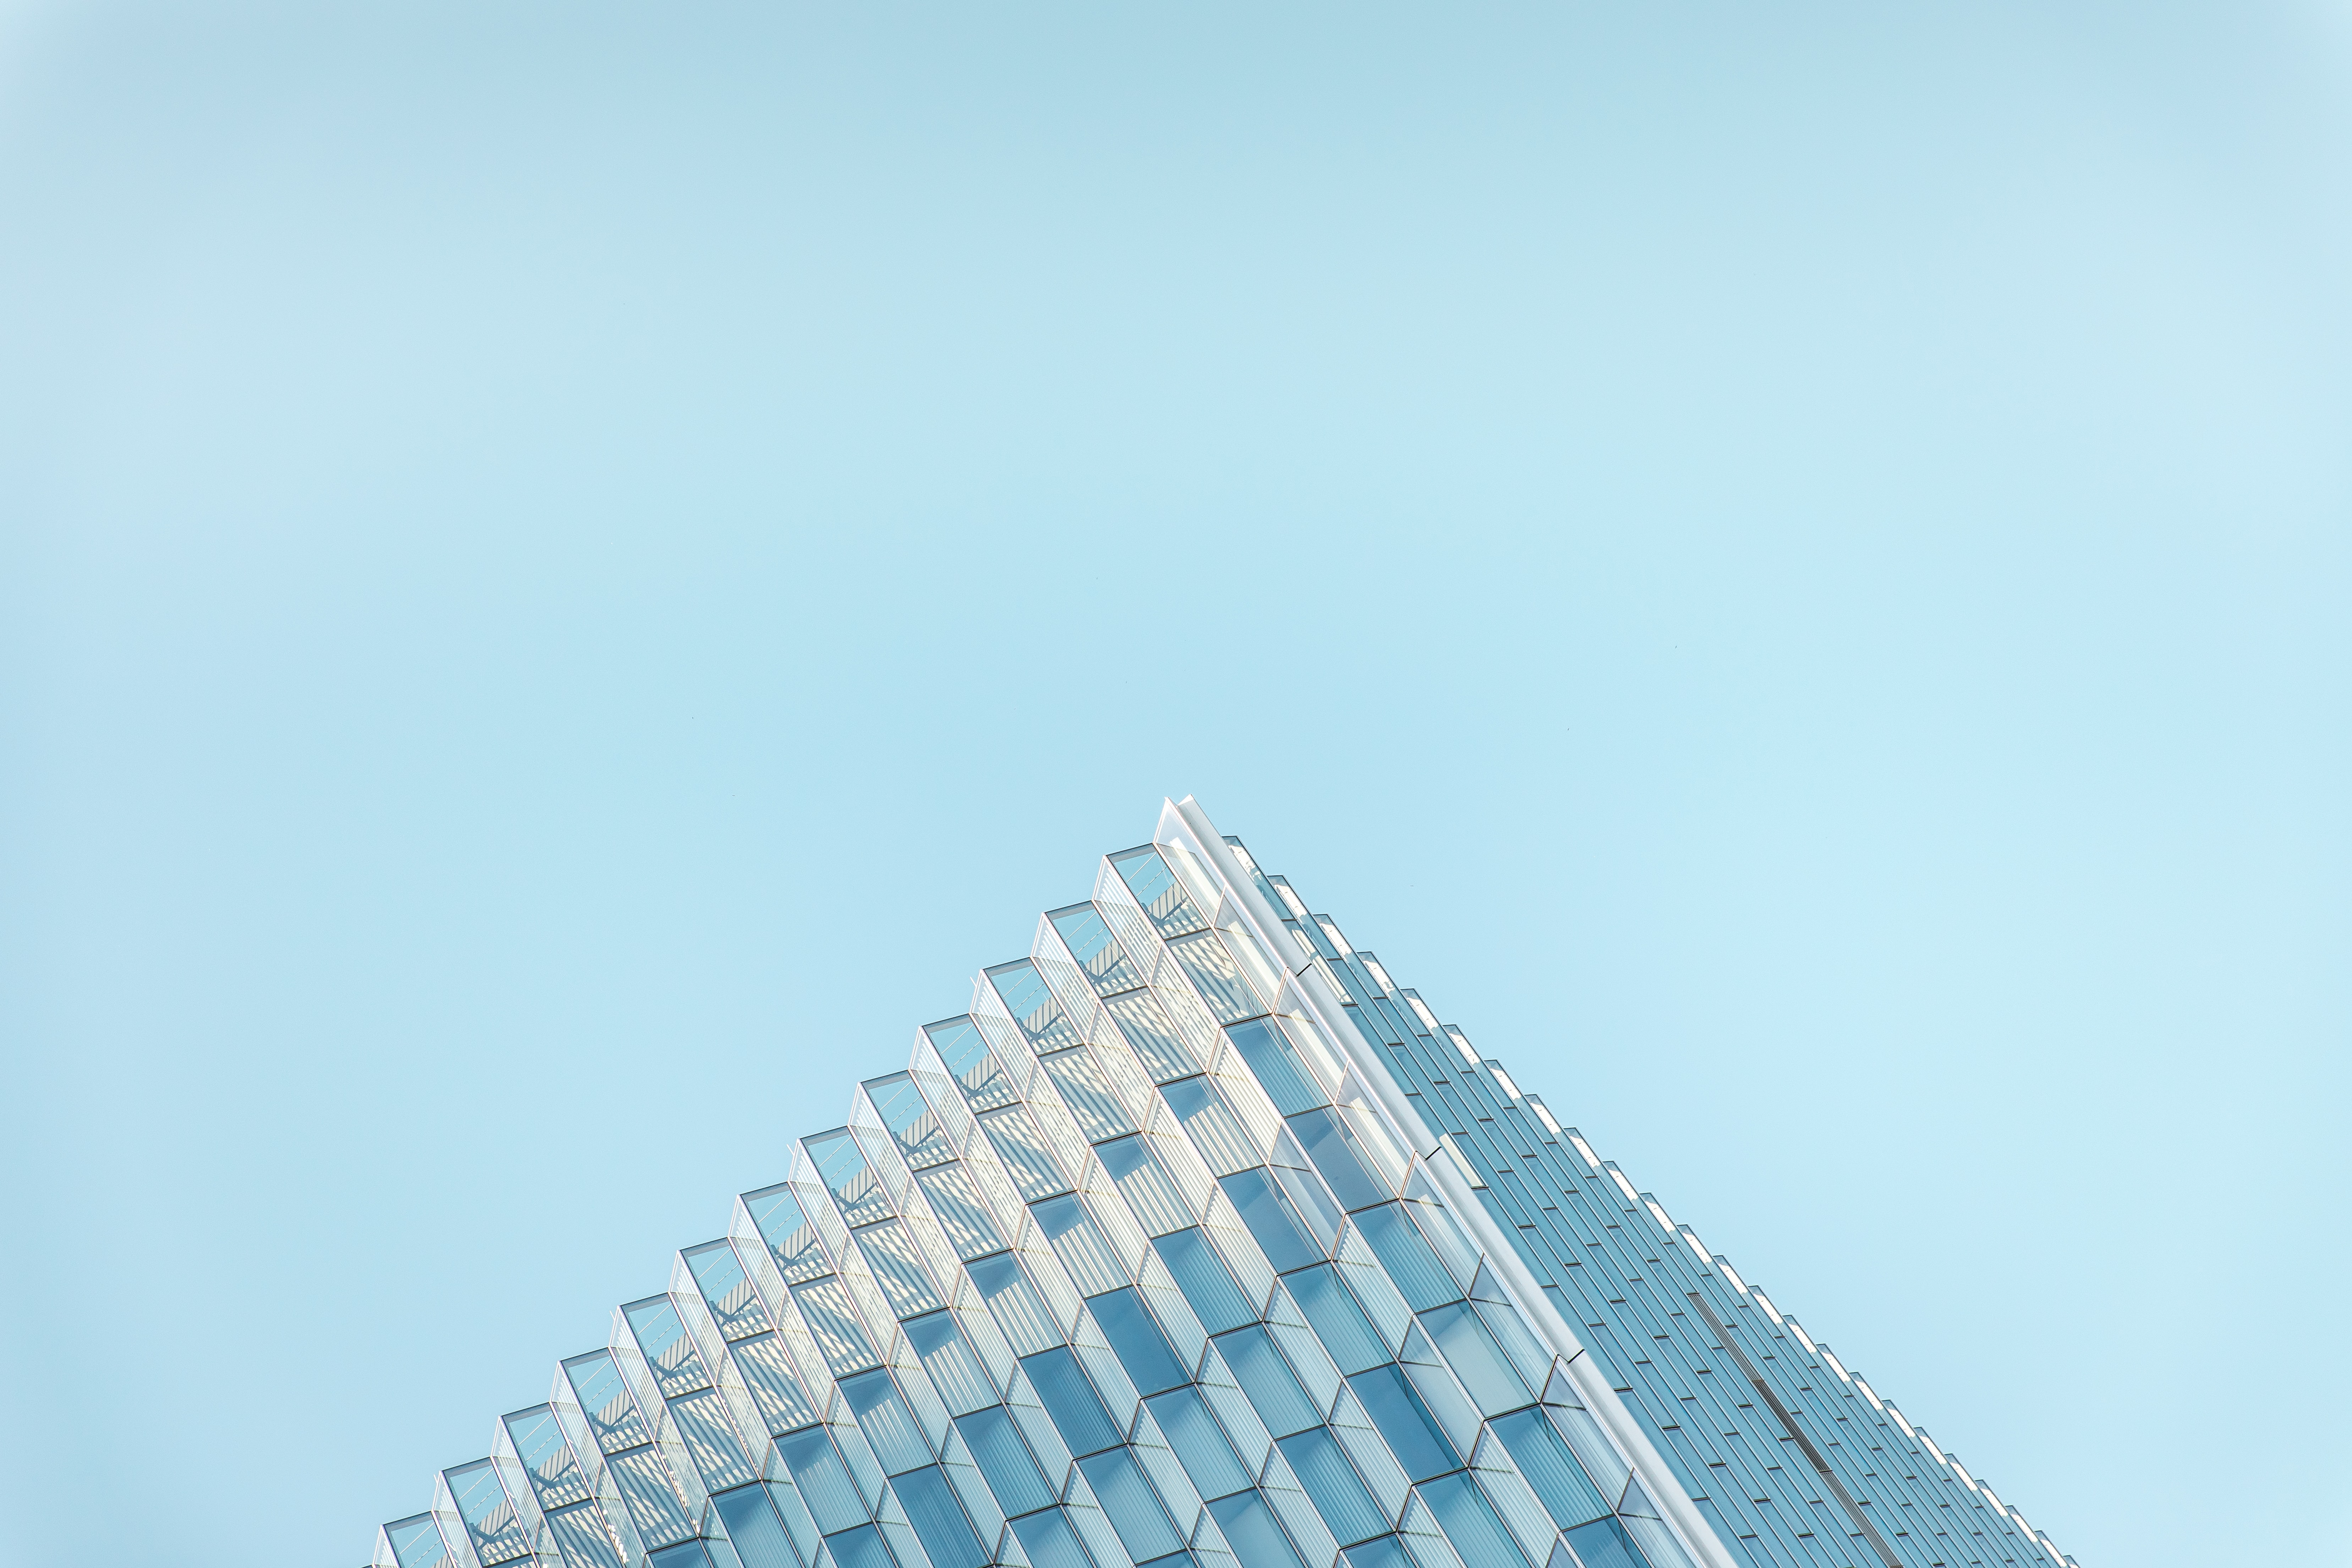 white and blue concrete building ceiling photo